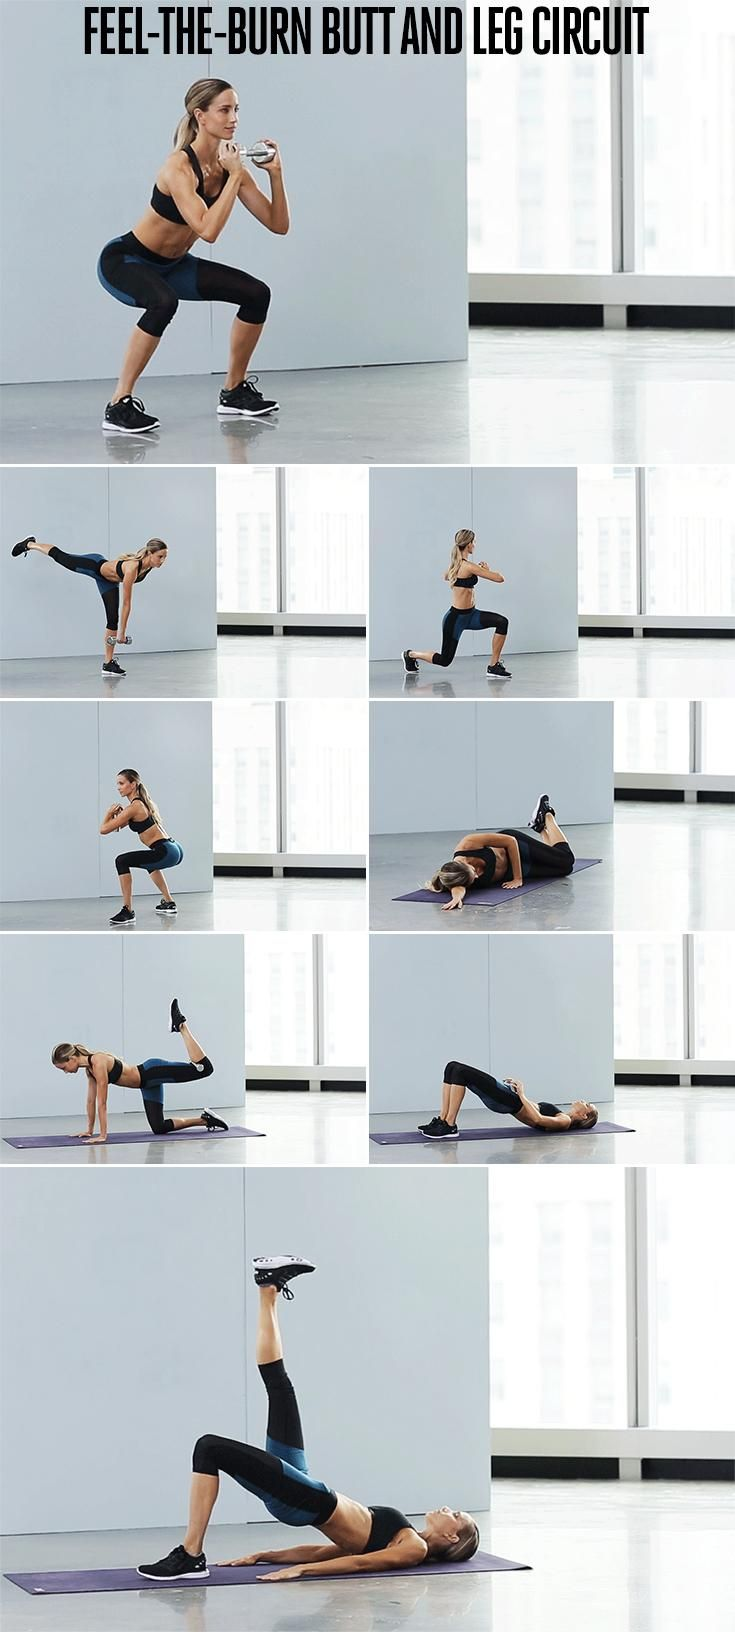 Ultimate butt and leg circuit